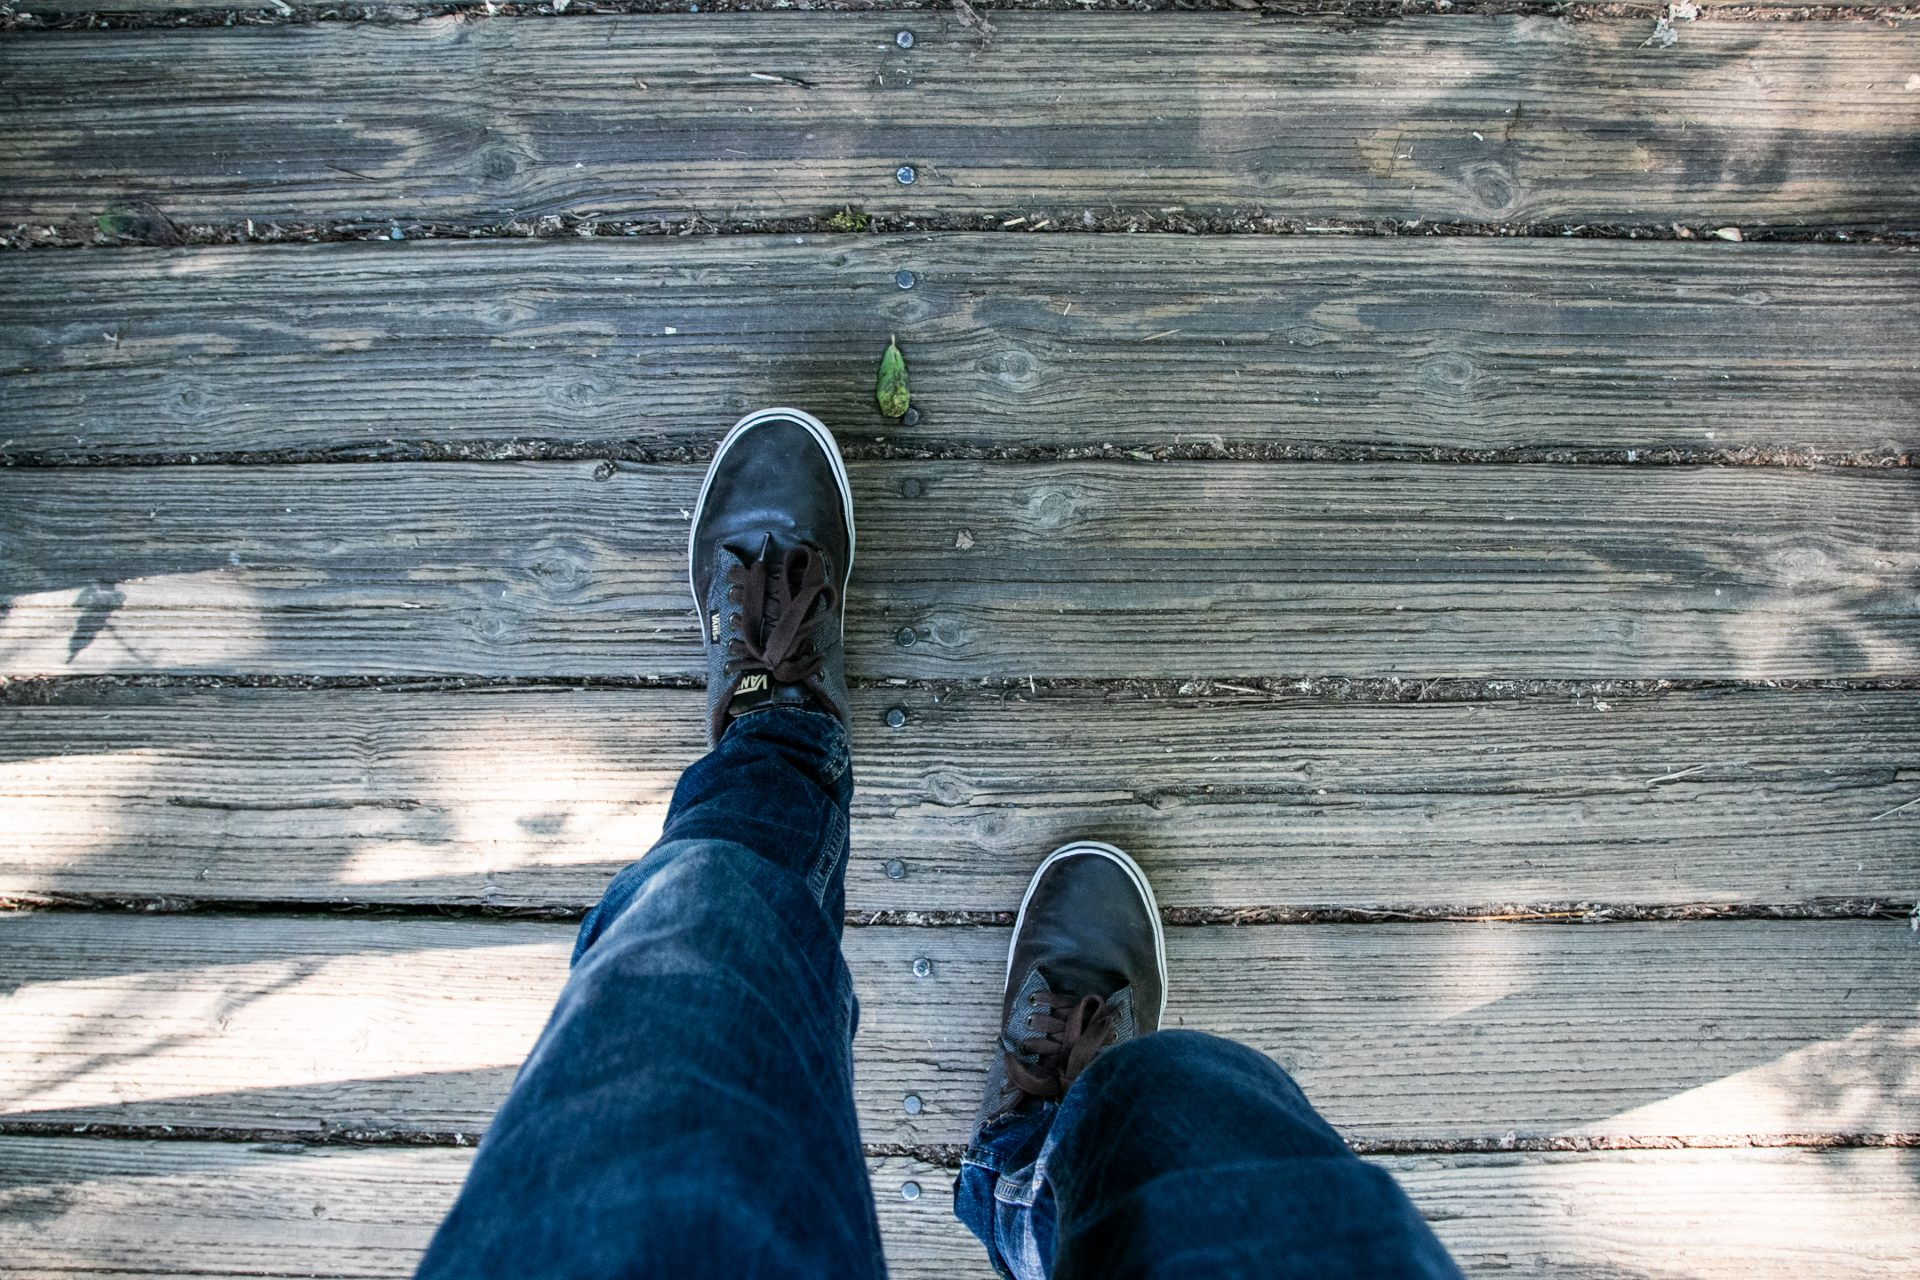 Walking Human Legs On Wooden Boardwalk